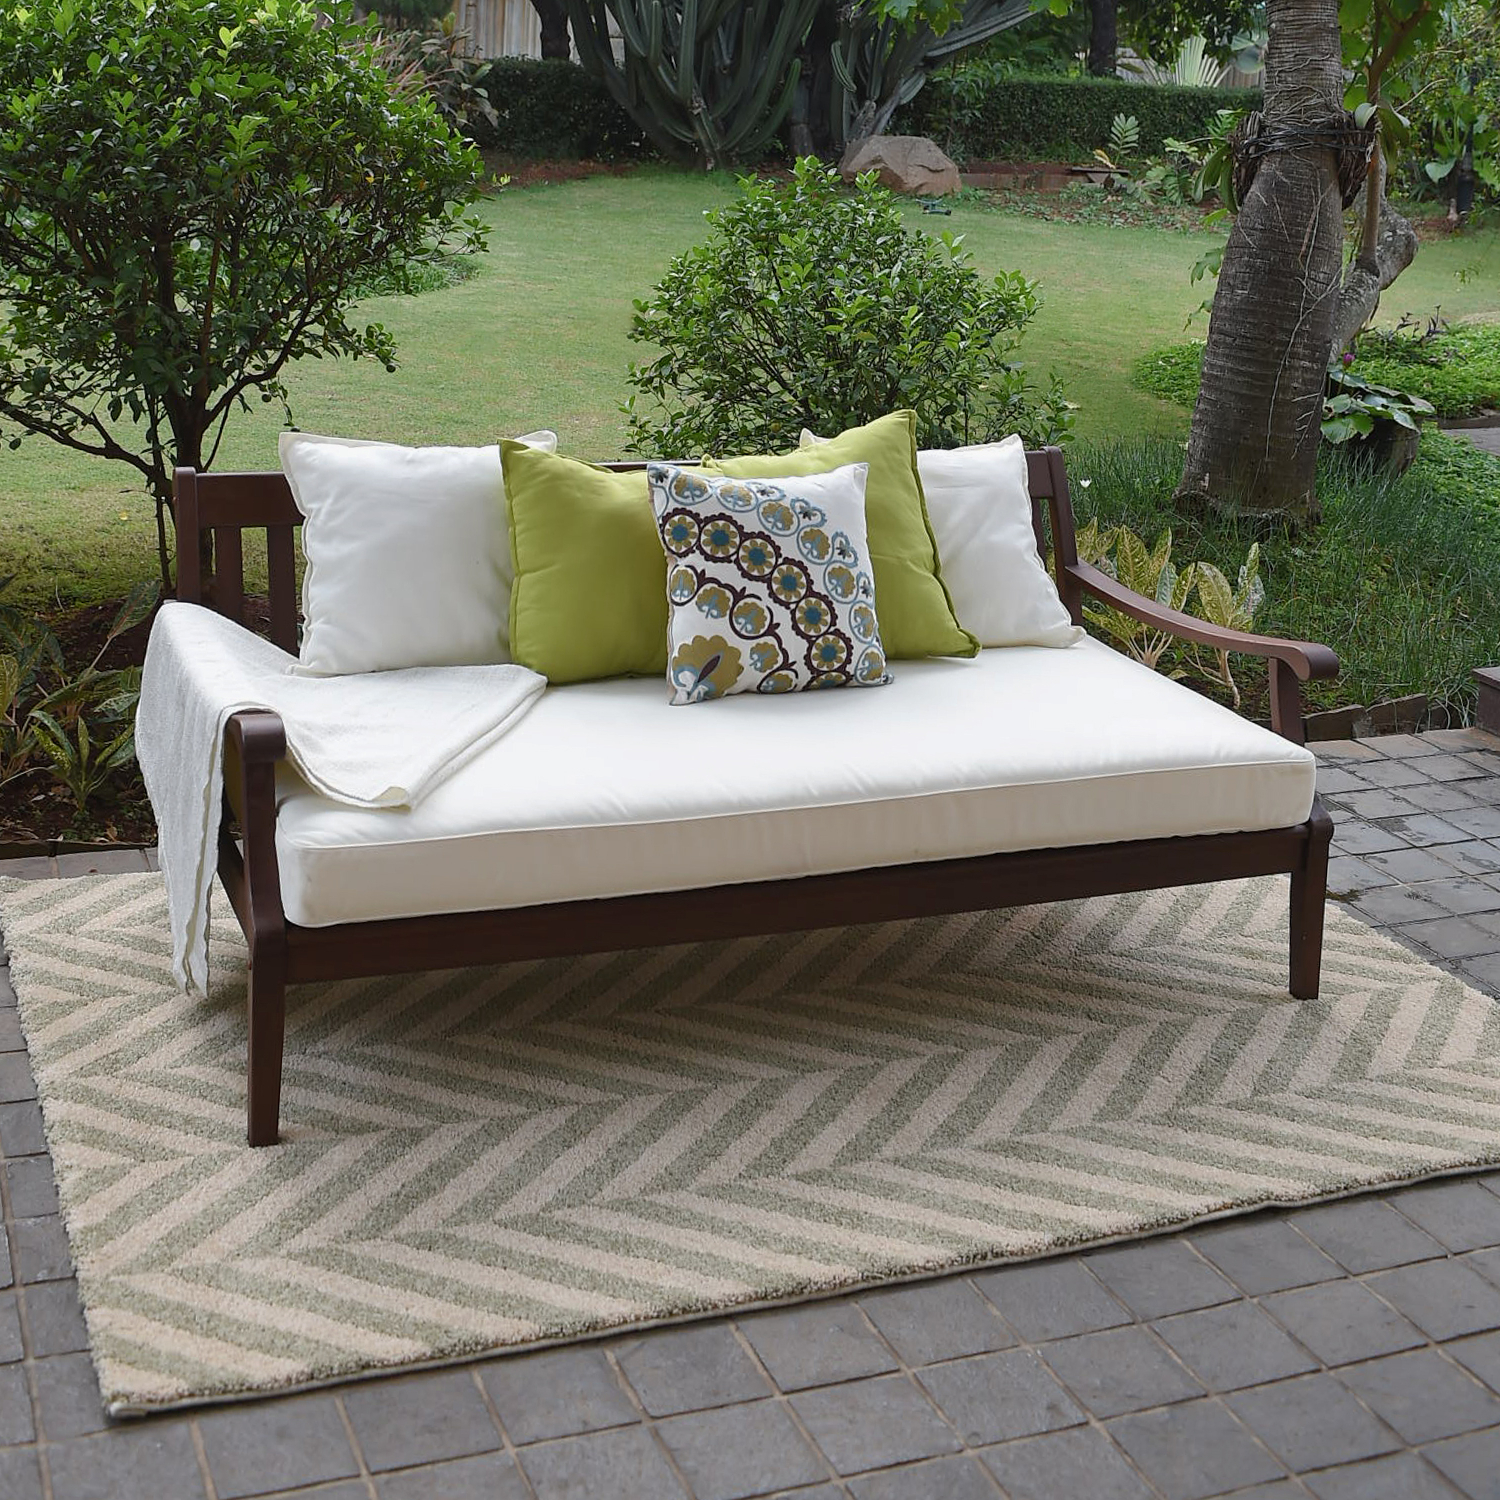 Aubrie Patio Daybeds With Cushions Intended For Popular Alston Wood Outdoor Sofa Daybed With White Cushion (View 4 of 25)